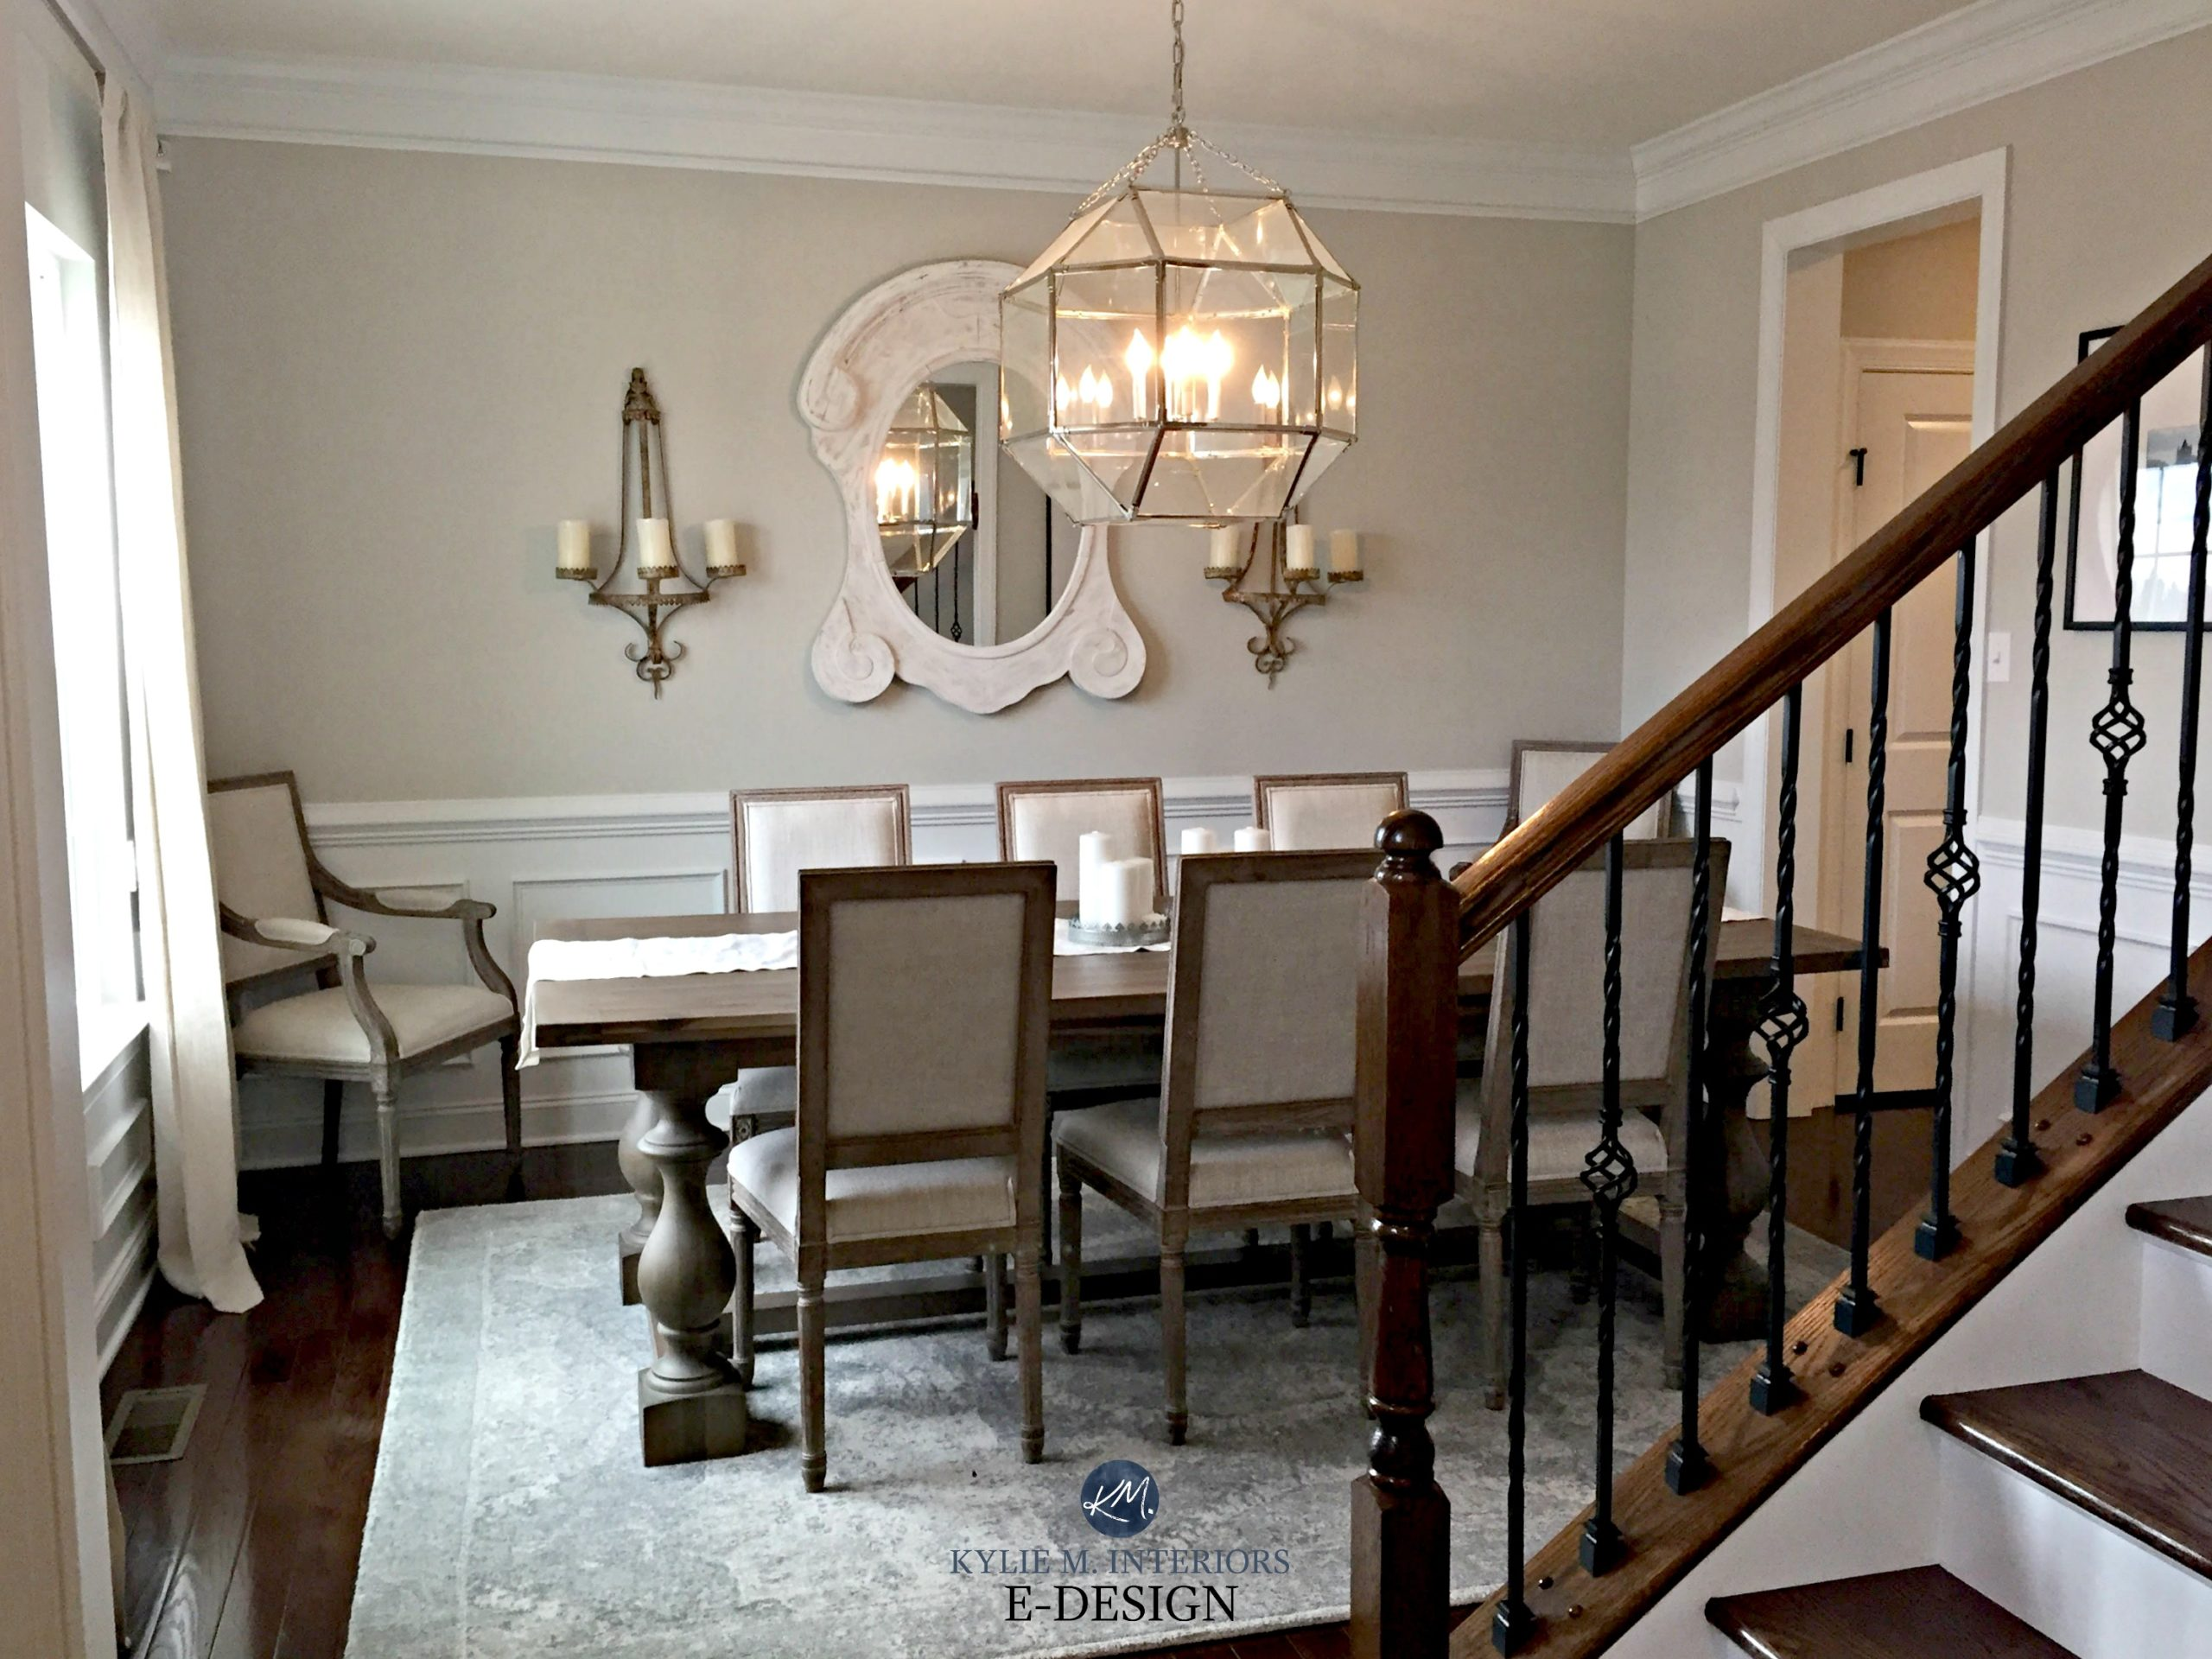 Bon Dining Room Traditional, Slightly Country Style. Sherwin Williams Agreeable  Gray, Crown Molding, Wainscoting. Kylie M INterior E Design, Client Before  Image